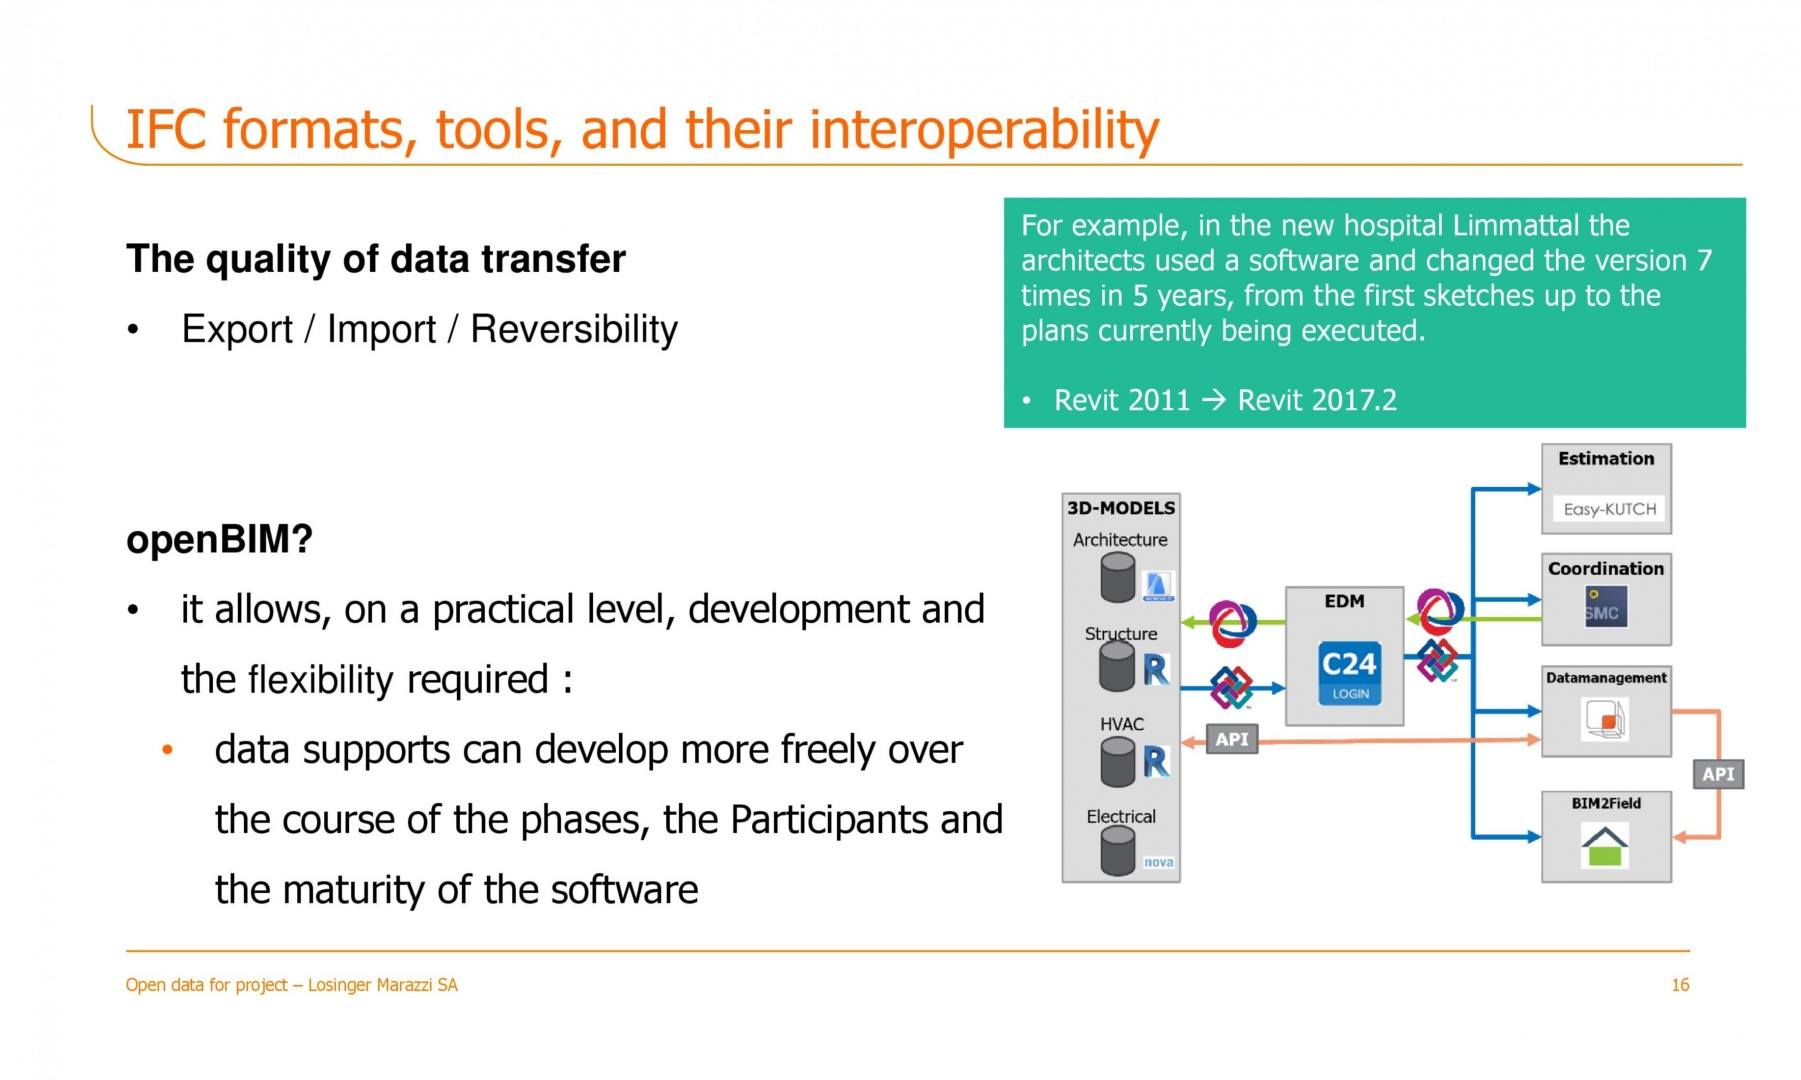 IFC formats, tools, and their interoperability © Losinger Marazzi SA